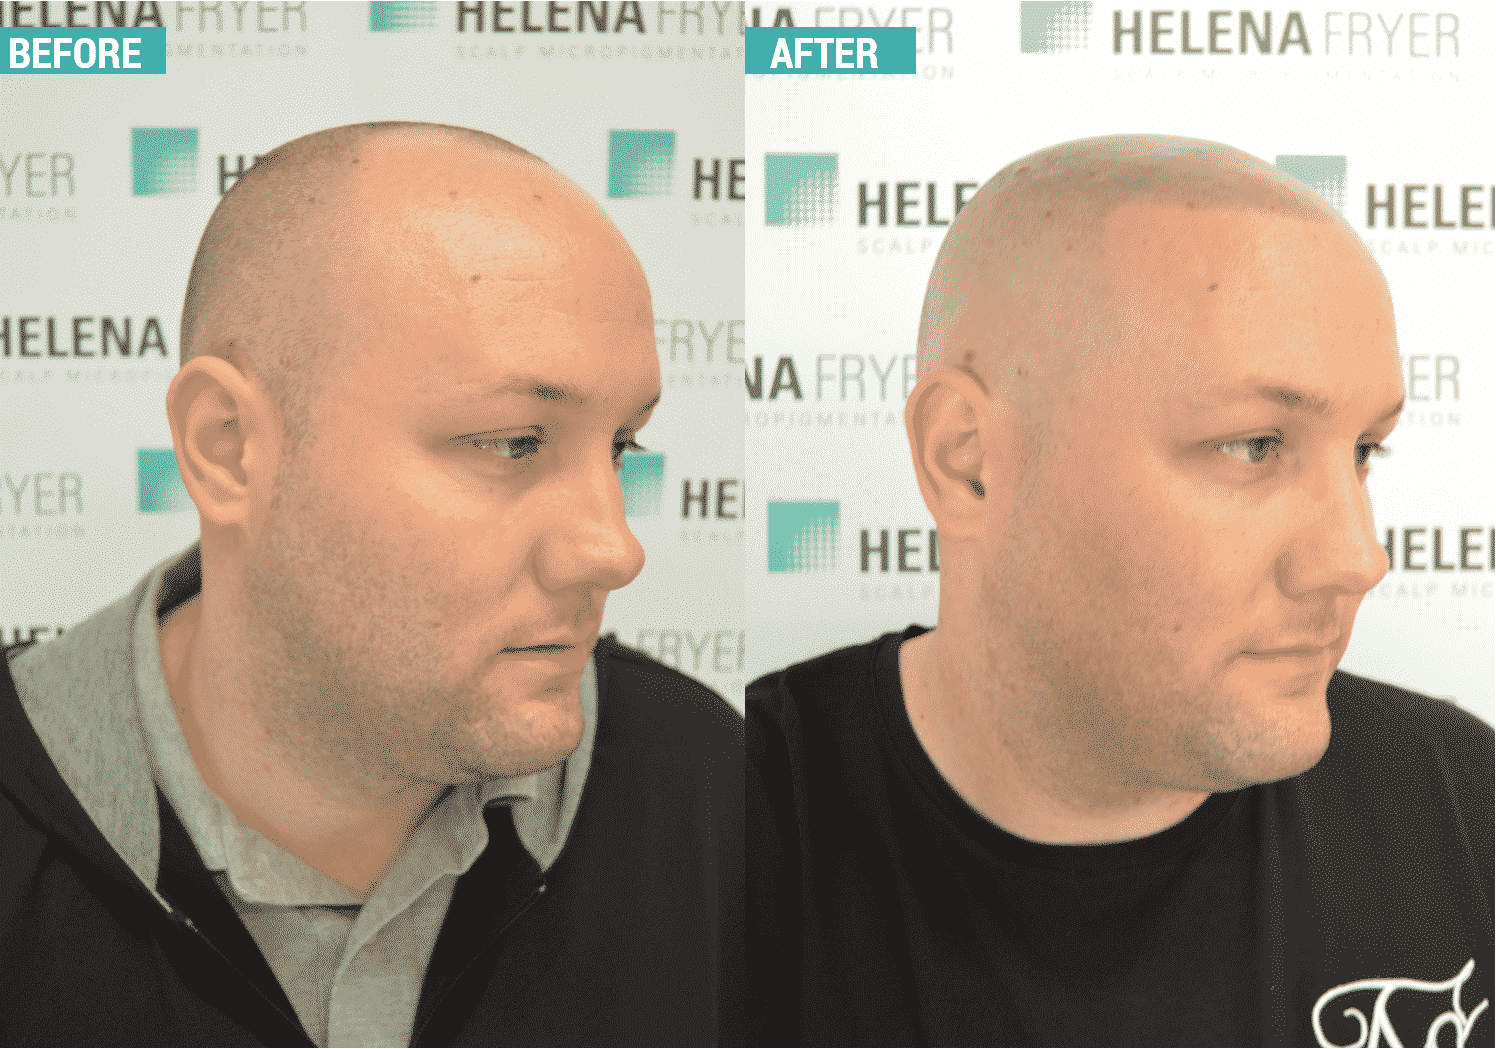 Client treated by UK practitioner Helena Fryer